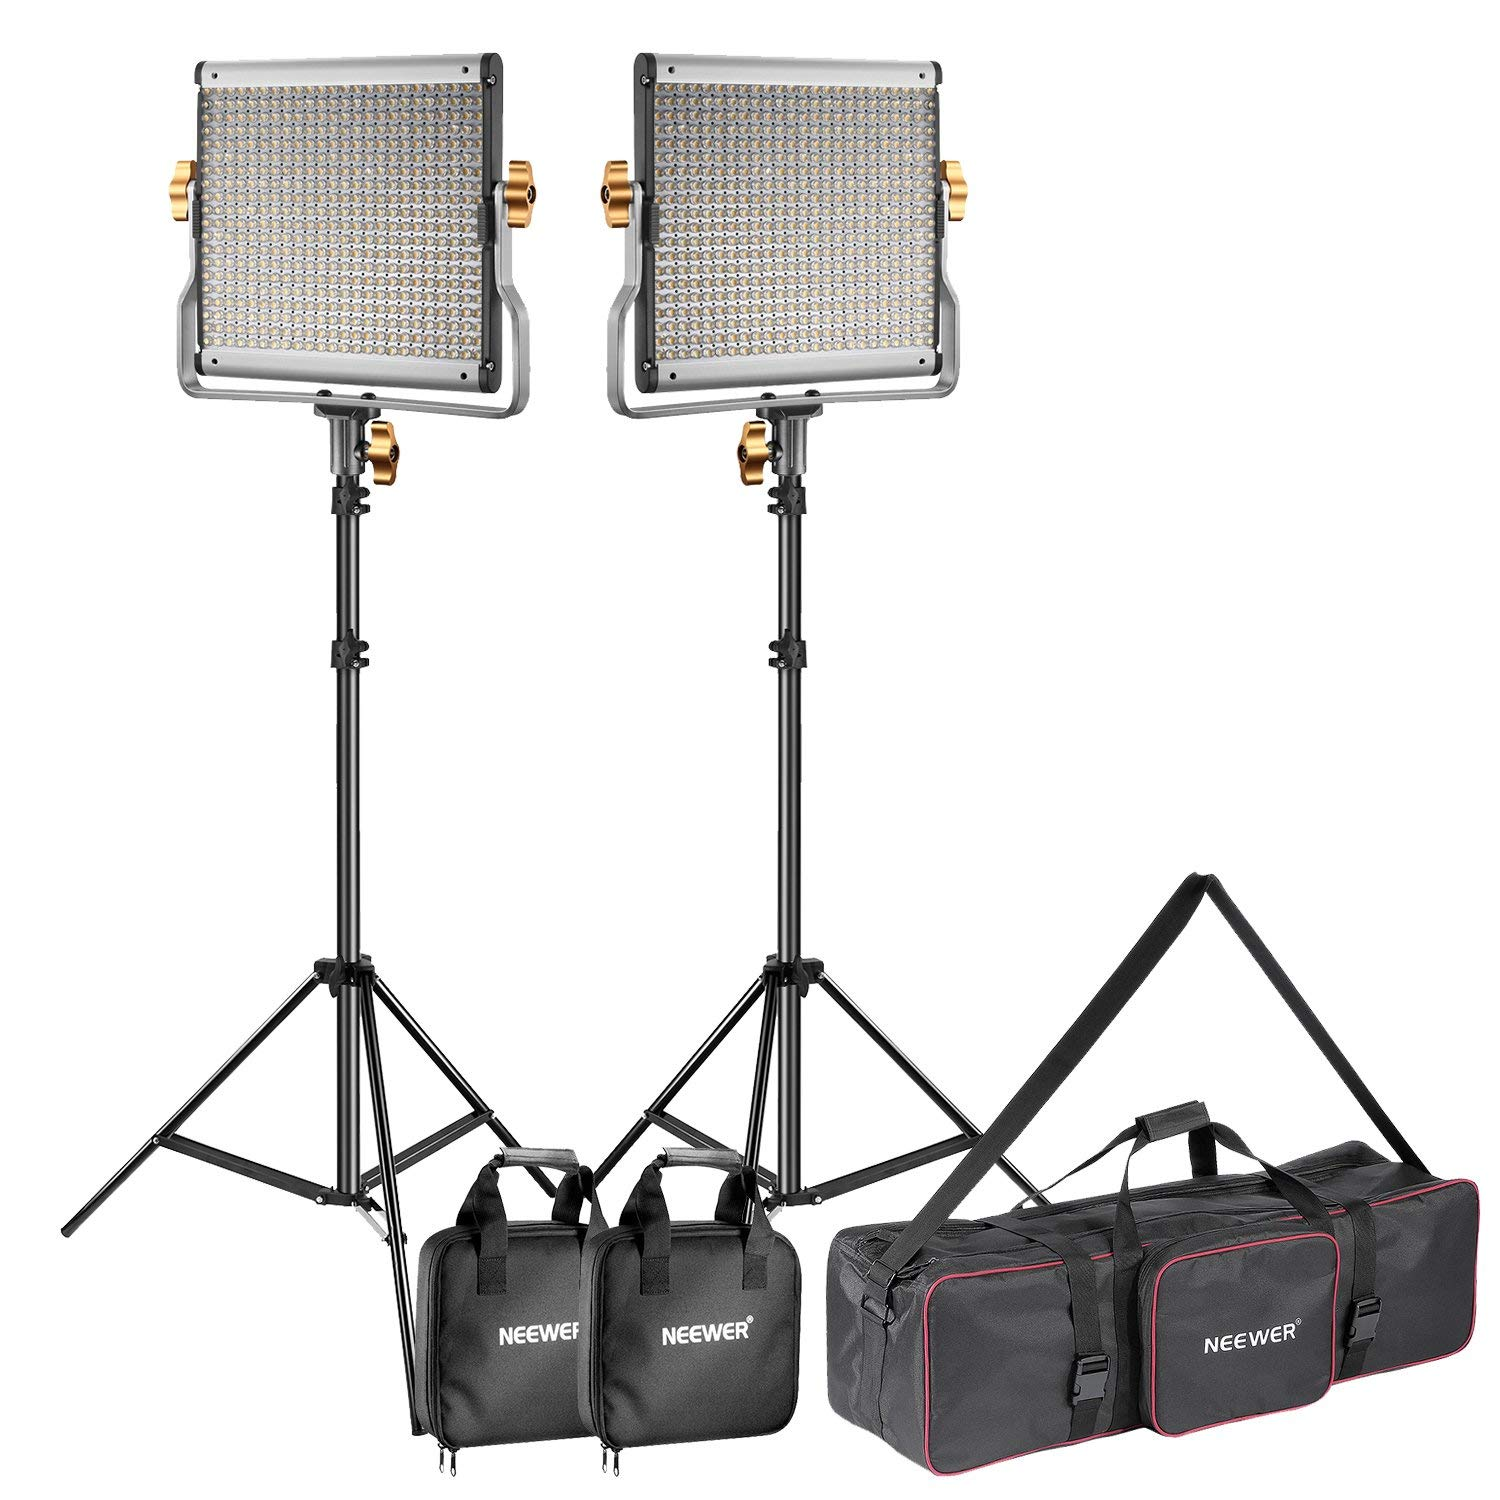 Neewer 2-Pack Dimmable Bi-color 480 LED Video Light and Stand Lighting Kit with Large Carrying Bag for Photo Studio Video Photography, Durable Metal Frame, 480 LED Beads,3200-5600K,CRI 96+